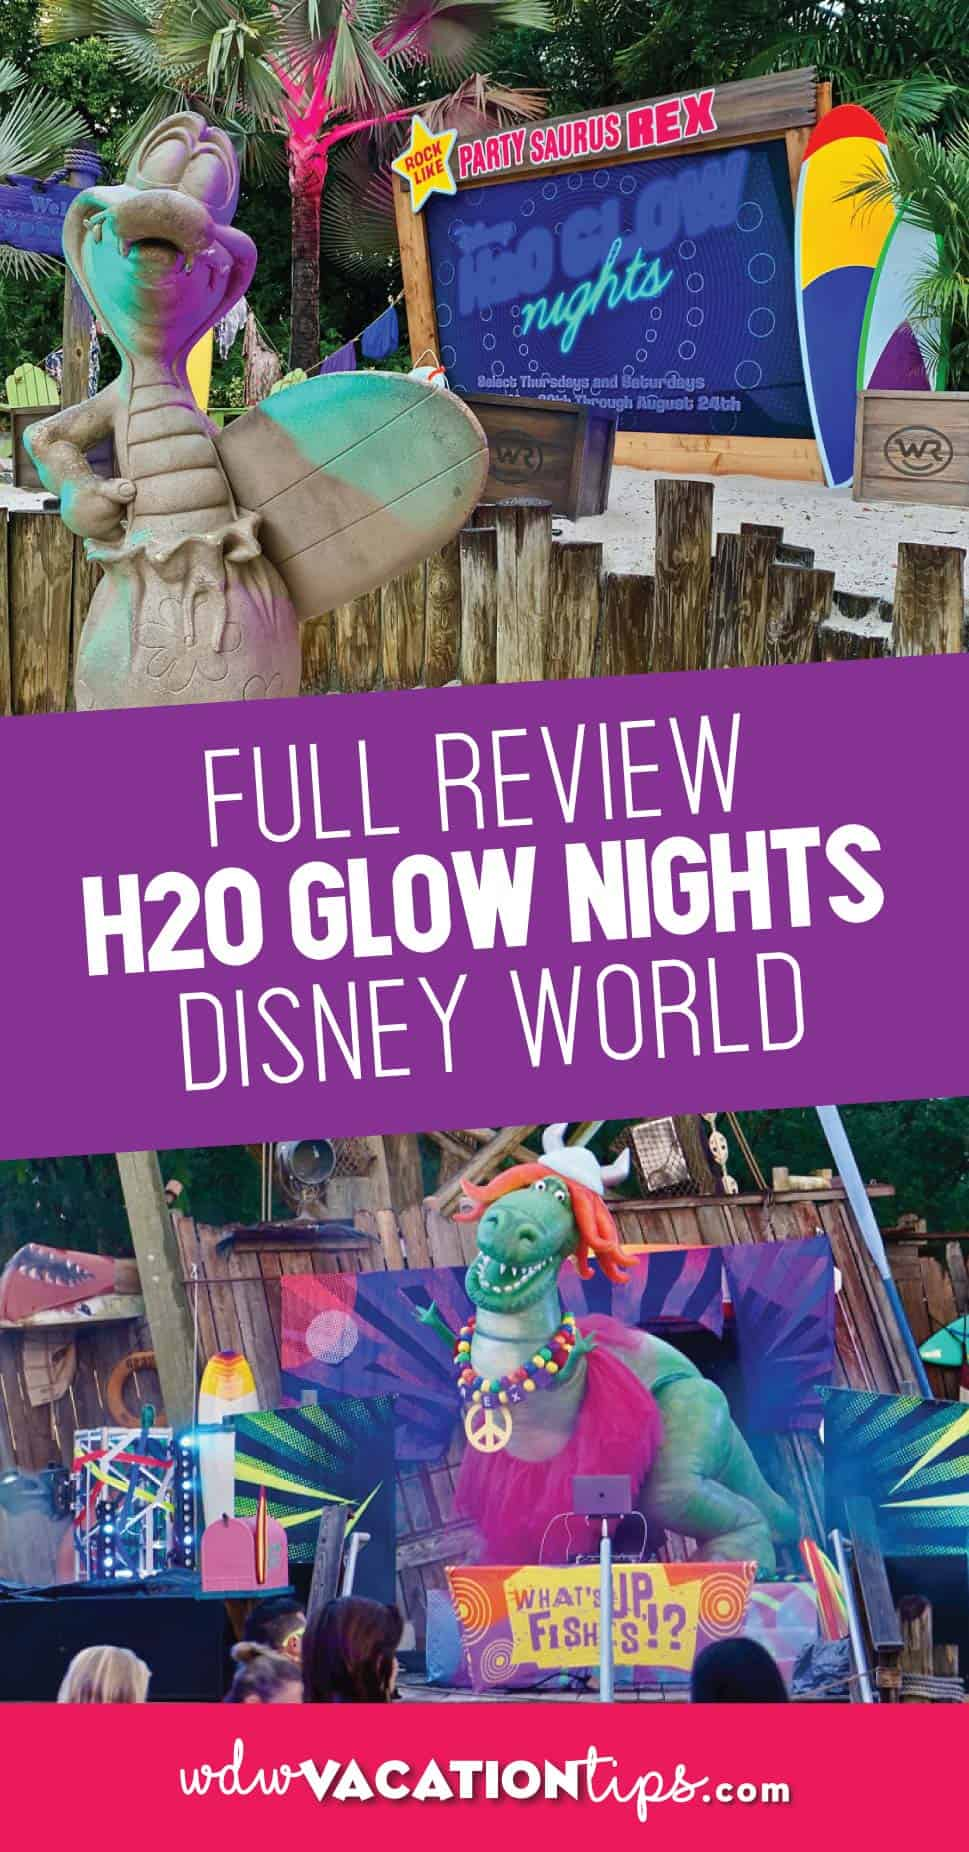 H20 Glow Nights Disney World